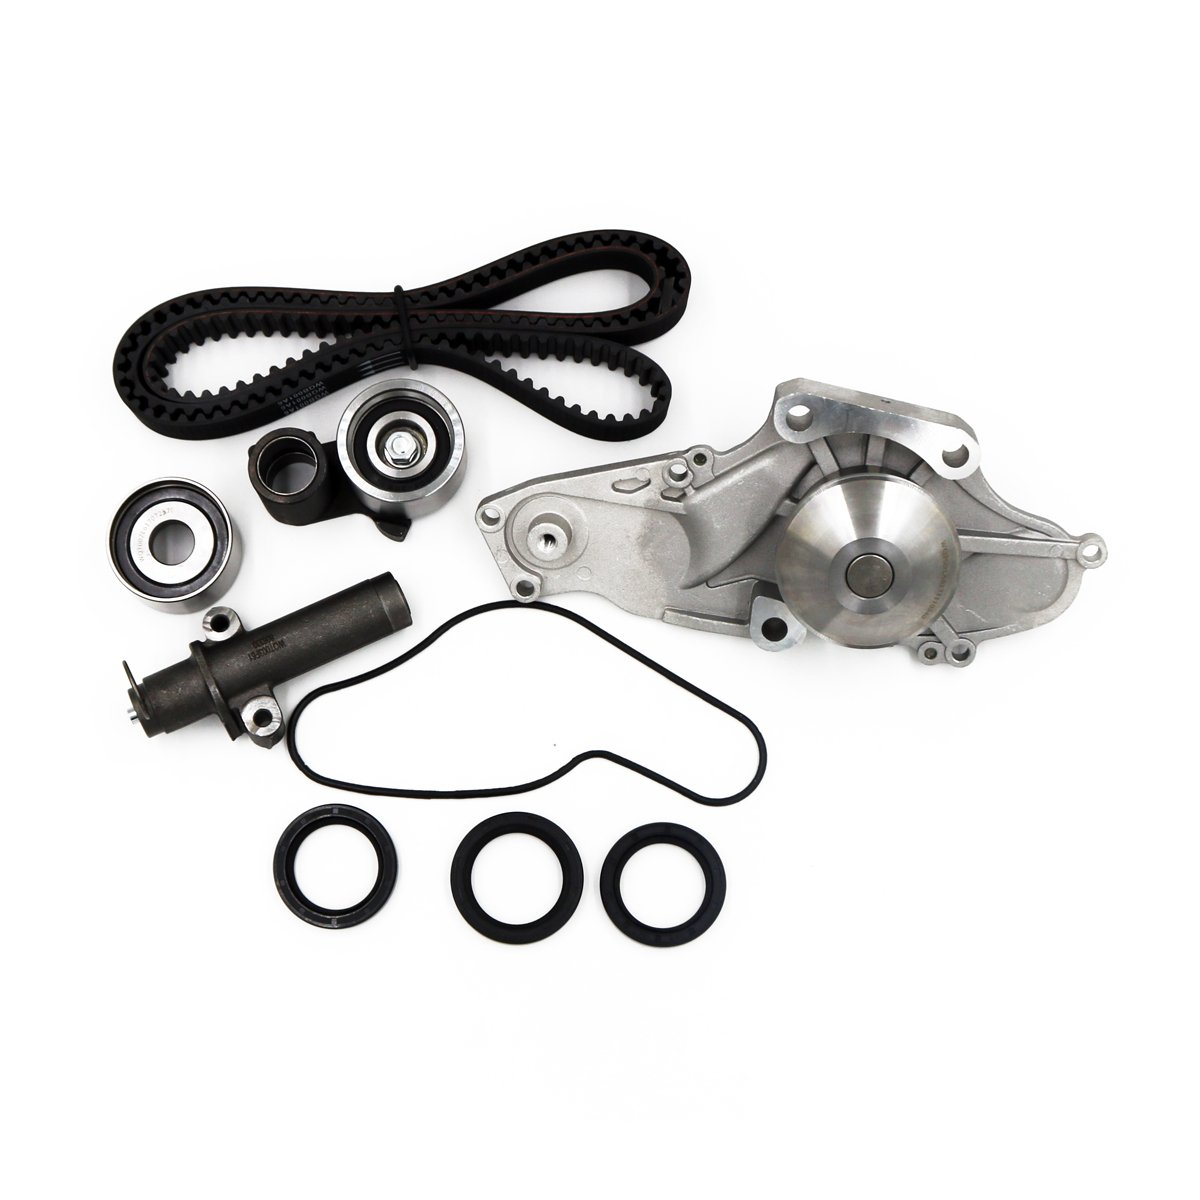 Timing Belt Water Pump Kit fits for 1999 2000 2001 2002 2003 2004 Honda Odyssey 2001-2003 Acura CL 3.2L 3.5L V6 SOHC J32A1 J32A2 J32A3 J35A1 J35A4 VTEC 2003-2004 Pilot